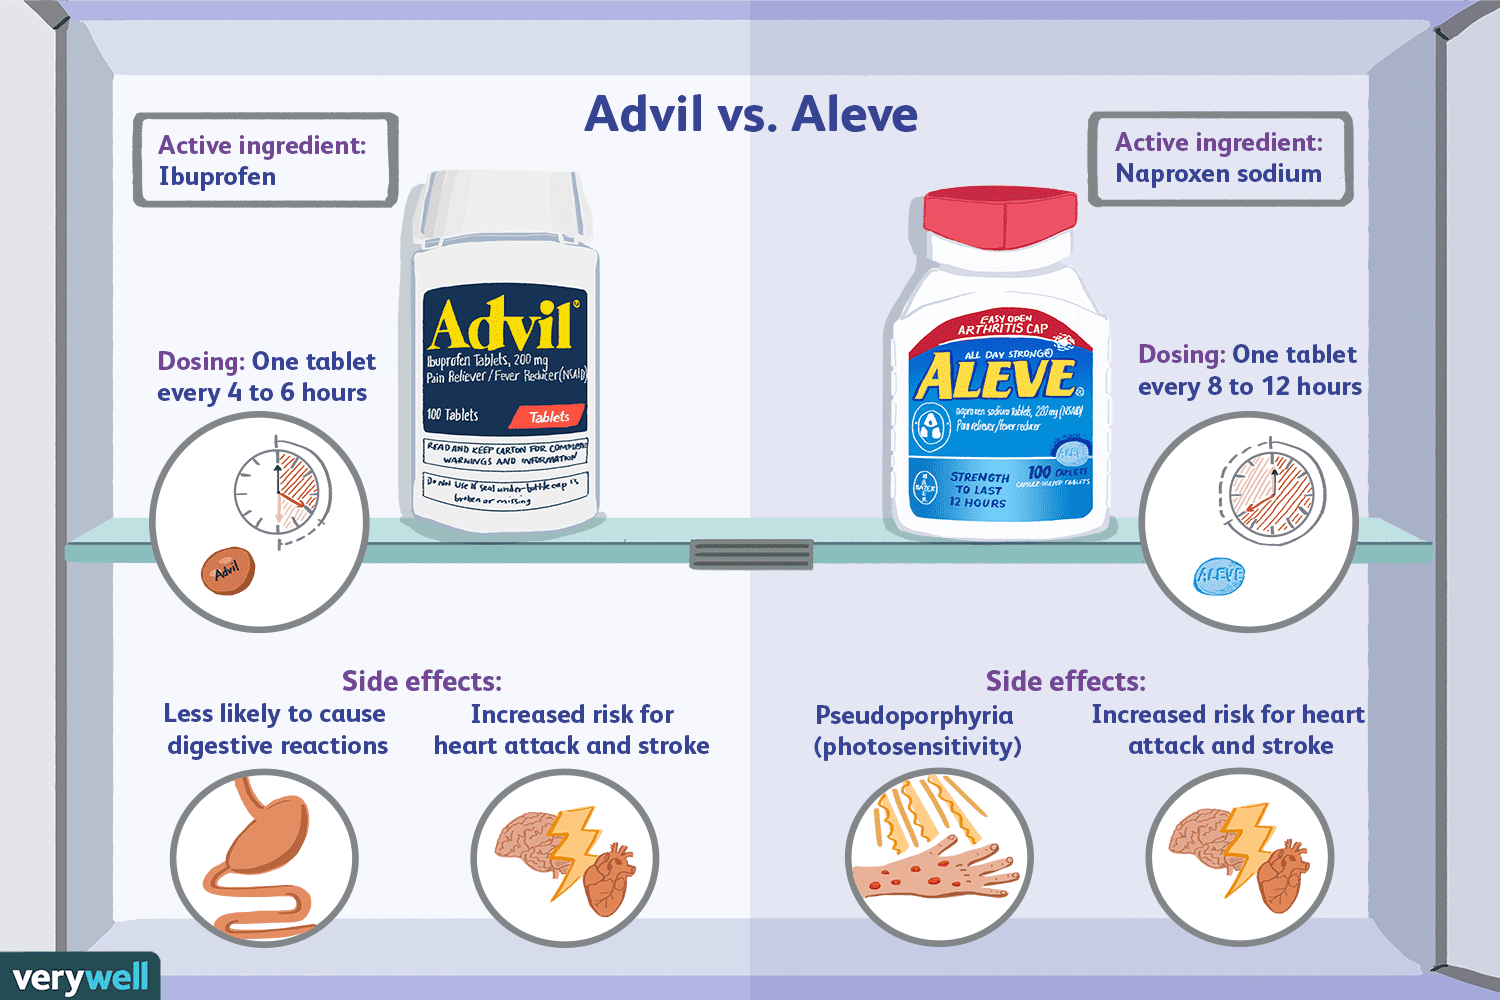 Advil and Aleve: What's the Difference?